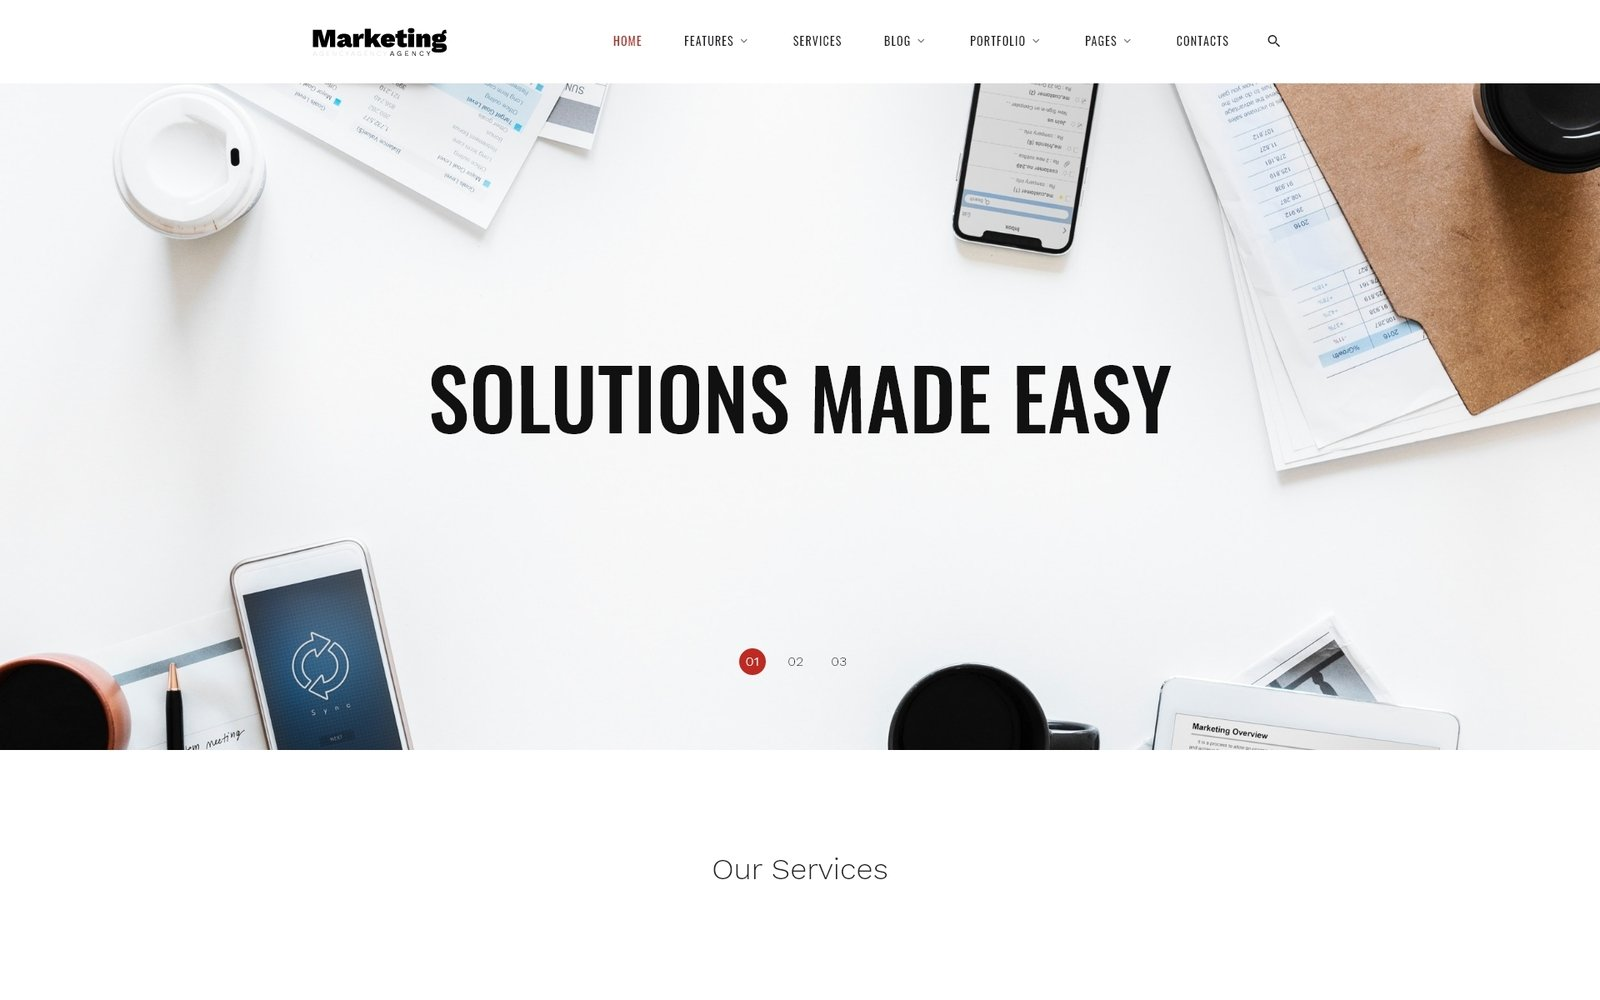 Marketing Agency - Responsive Marketing Agency Multipage Template Web №69397